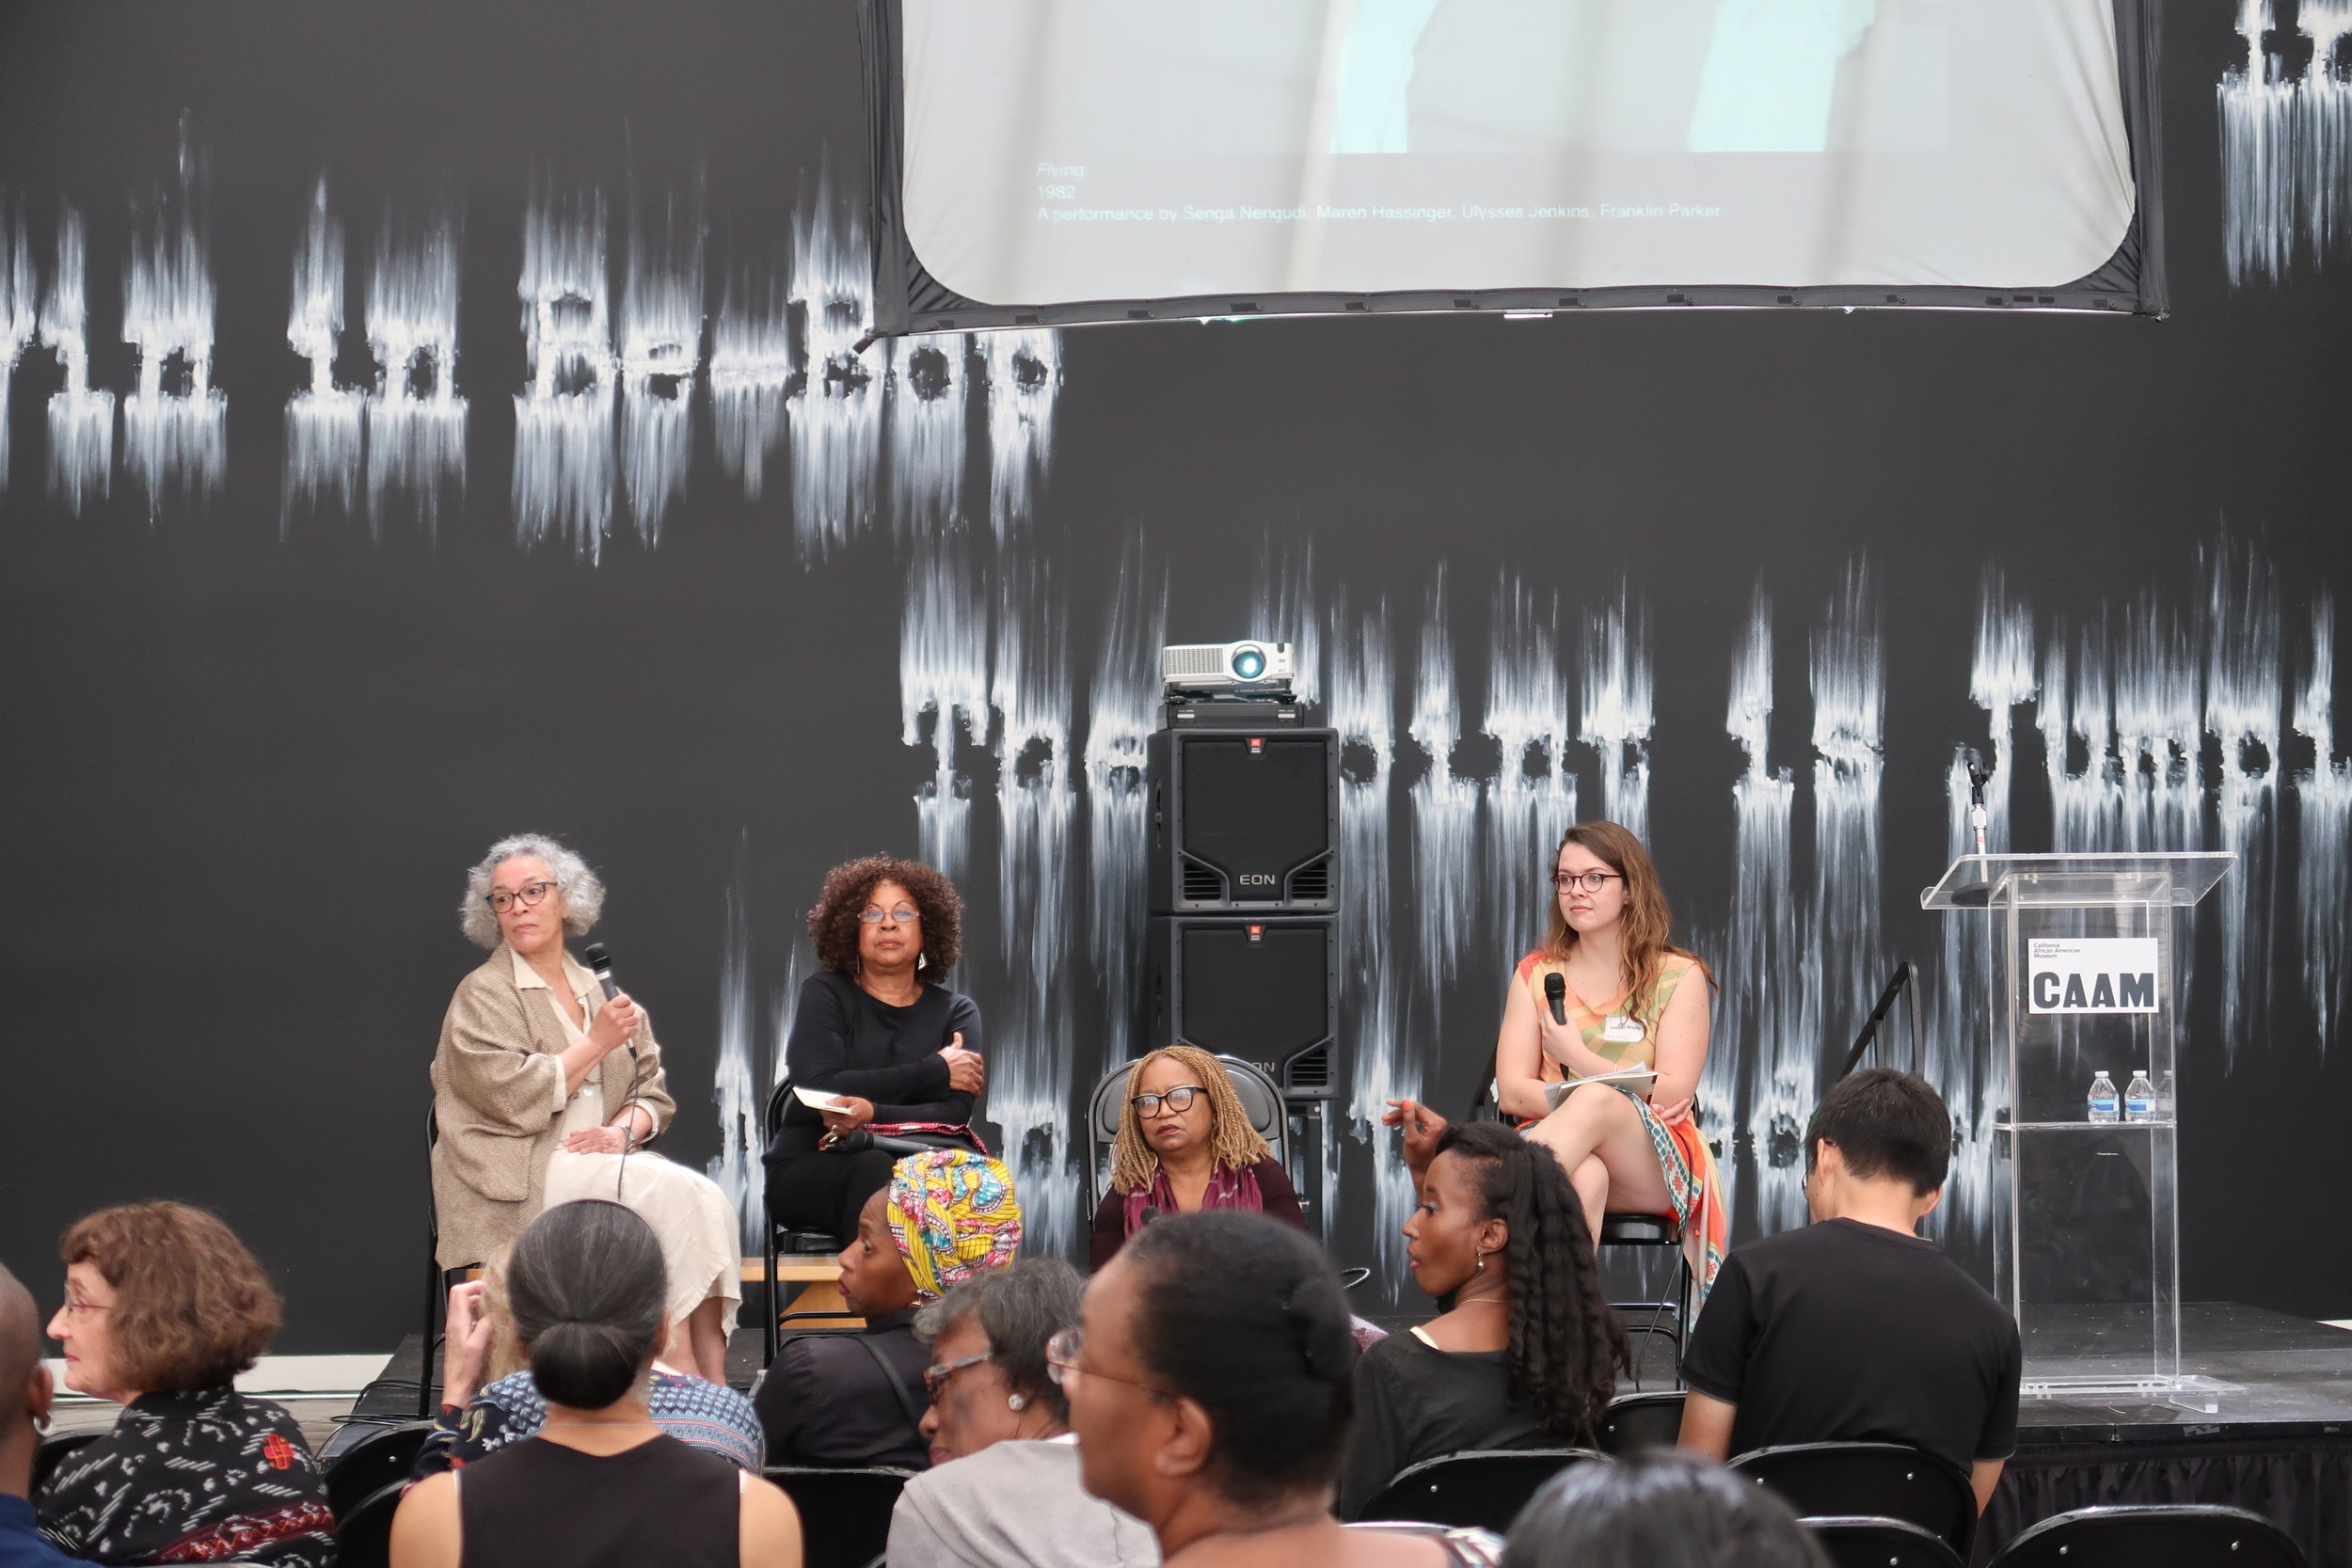 (from left to right) Maren Hassinger, Senga Nengudi, Barbara McCullough, and Isabel Wade at Conversation: 'Ritual in Rearview' panel discussion. A Day with Senga Nengudi Symposium at the California African American Museum in LA, April 14, 2018.